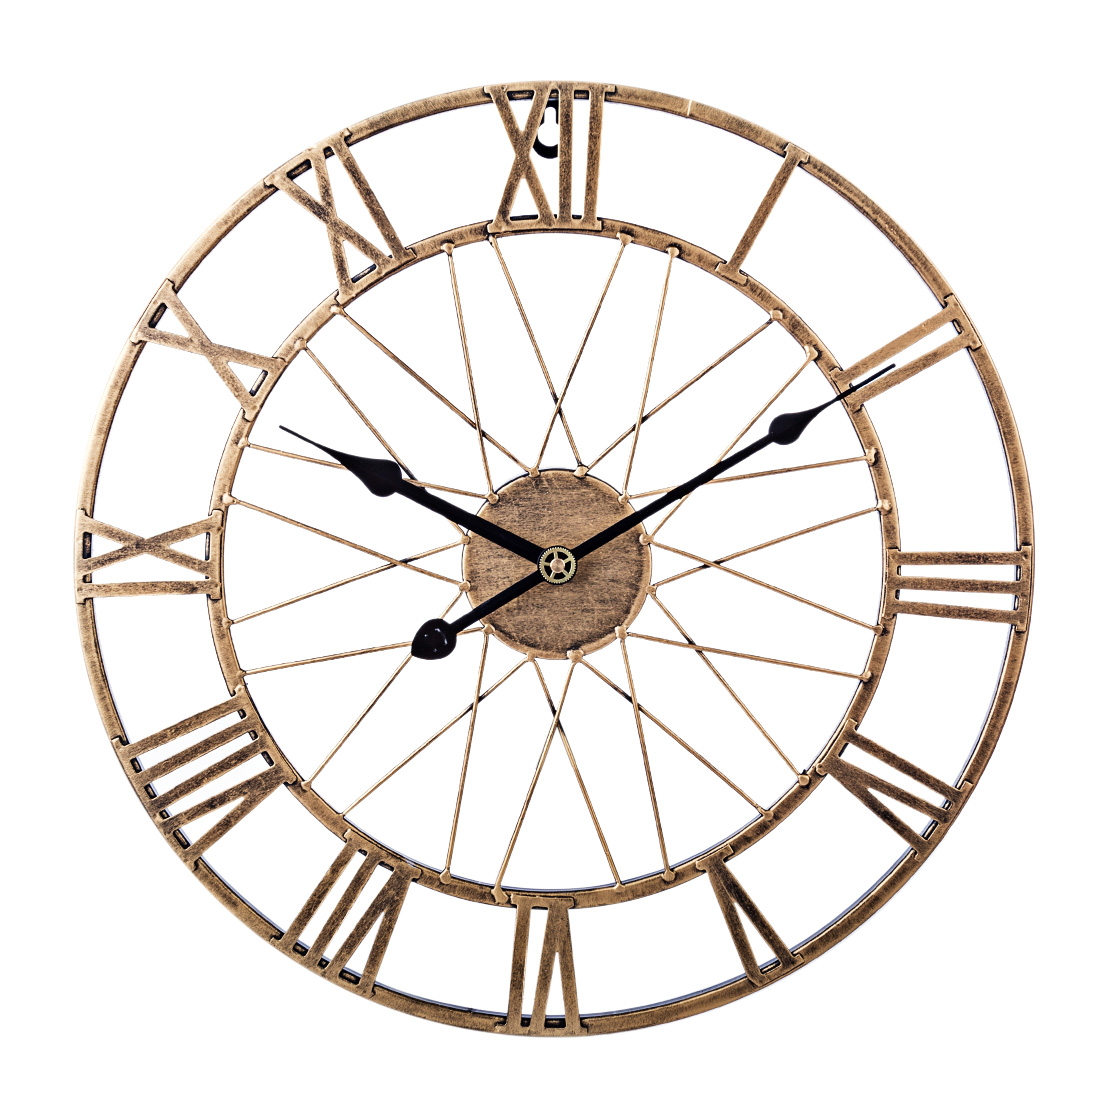 40cm Iron Art Hollow Silent Wall Clock Mute Clock With Roman Numerals For Living Room Bedroom Decor - Vintage Golden